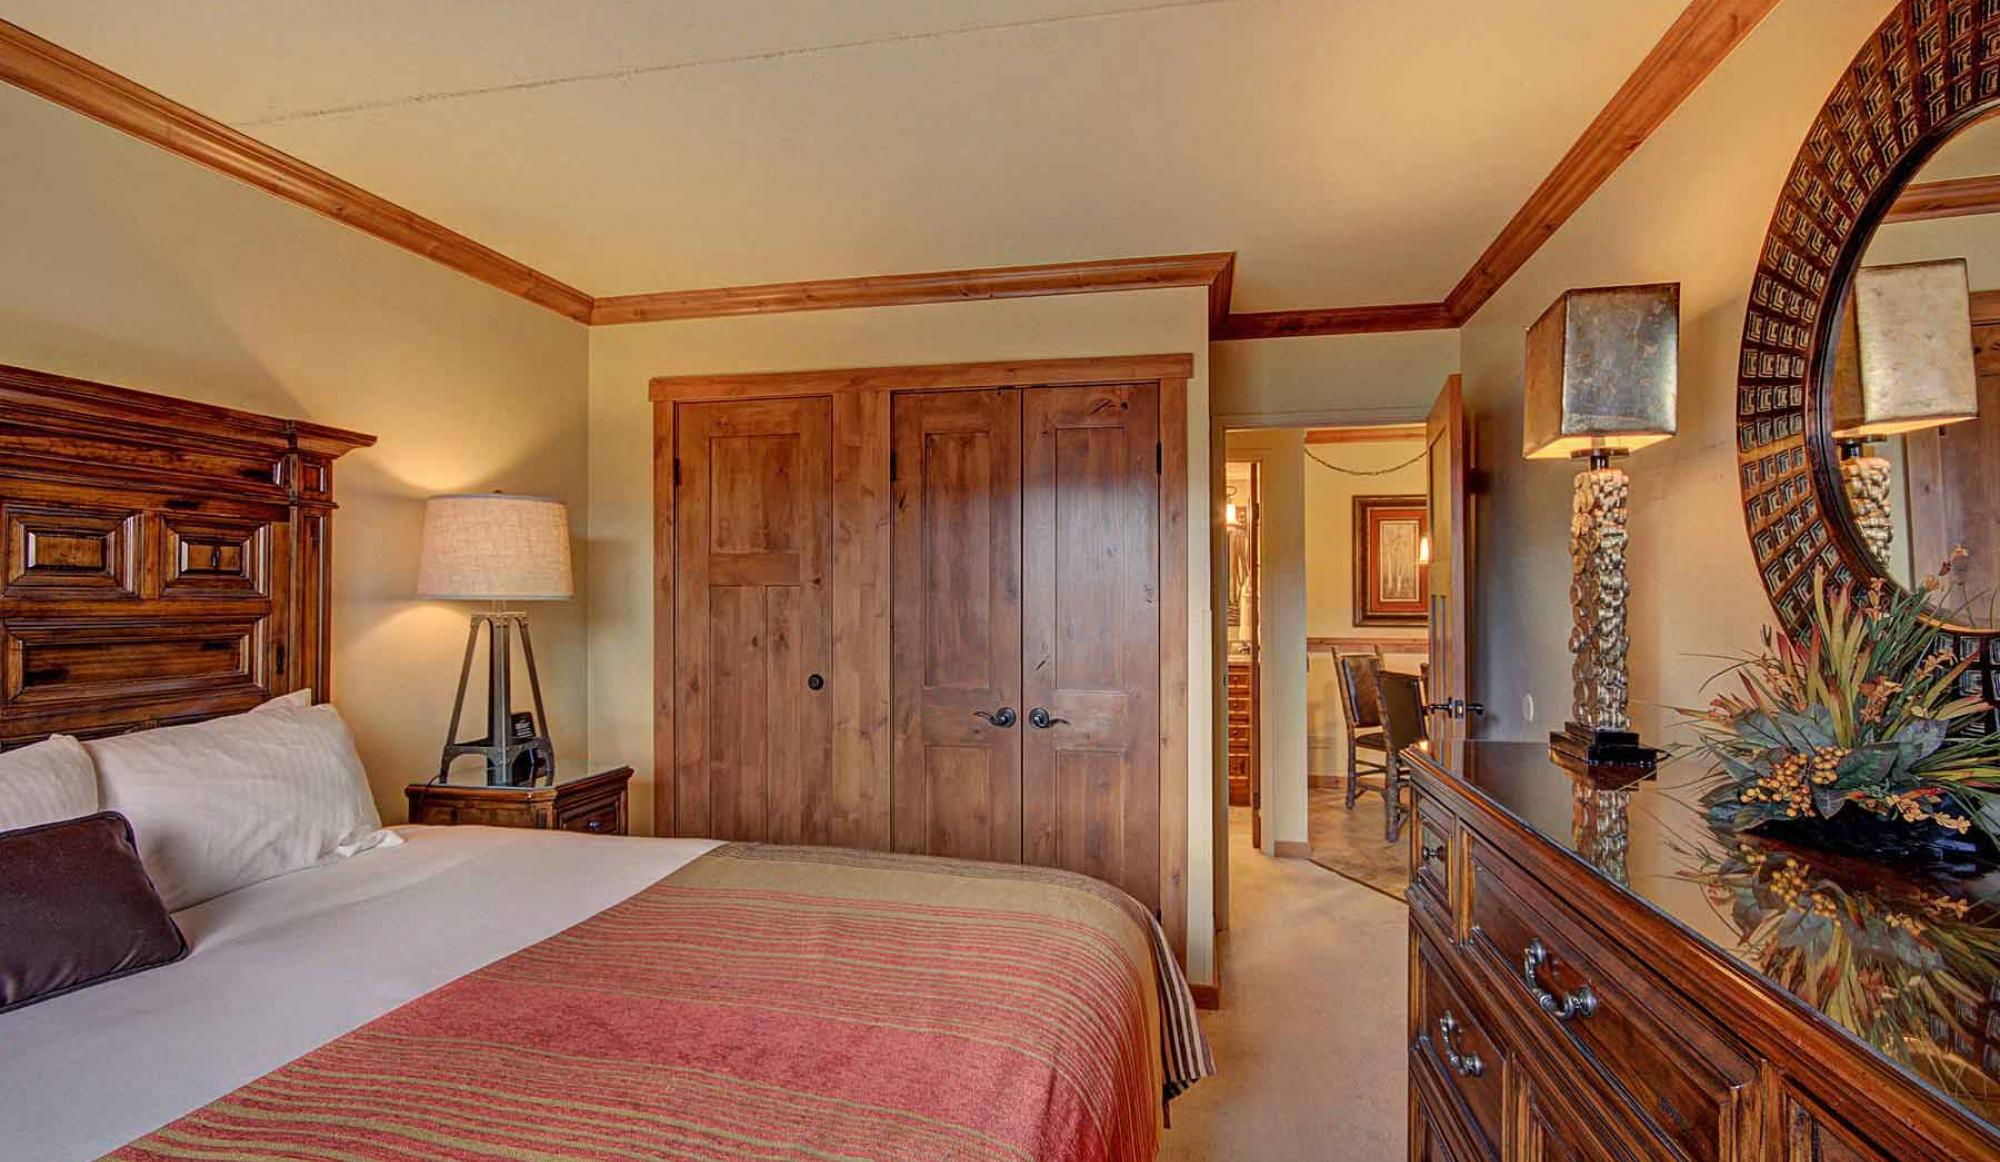 One Bedroom Condo Bedroom at Beaver Run Resort in Breckenridge